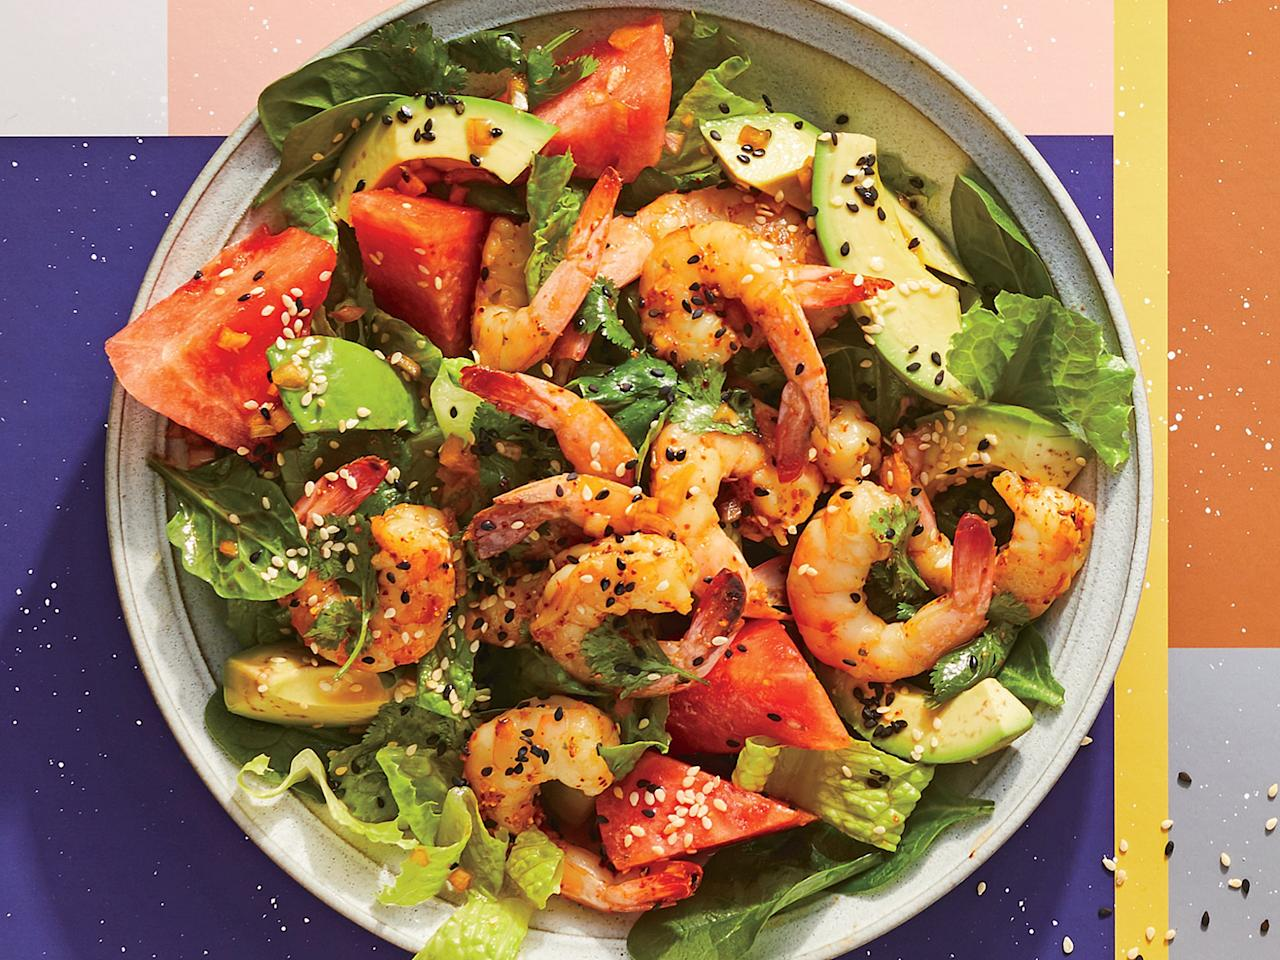 """<p>This summery dish is full of the season's freshest ingredients and pair perfectly with shrimp. Steaming the shrimp helps prevent overcooking and keeps it succulent. Watermelon makes a surprisingly good pairing.</p> <p> <a href=""""https://www.cookinglight.com/recipes/steamed-shrimp-and-watermelon-salad"""">View Recipe: Steamed Shrimp and Watermelon Salad</a></p>"""